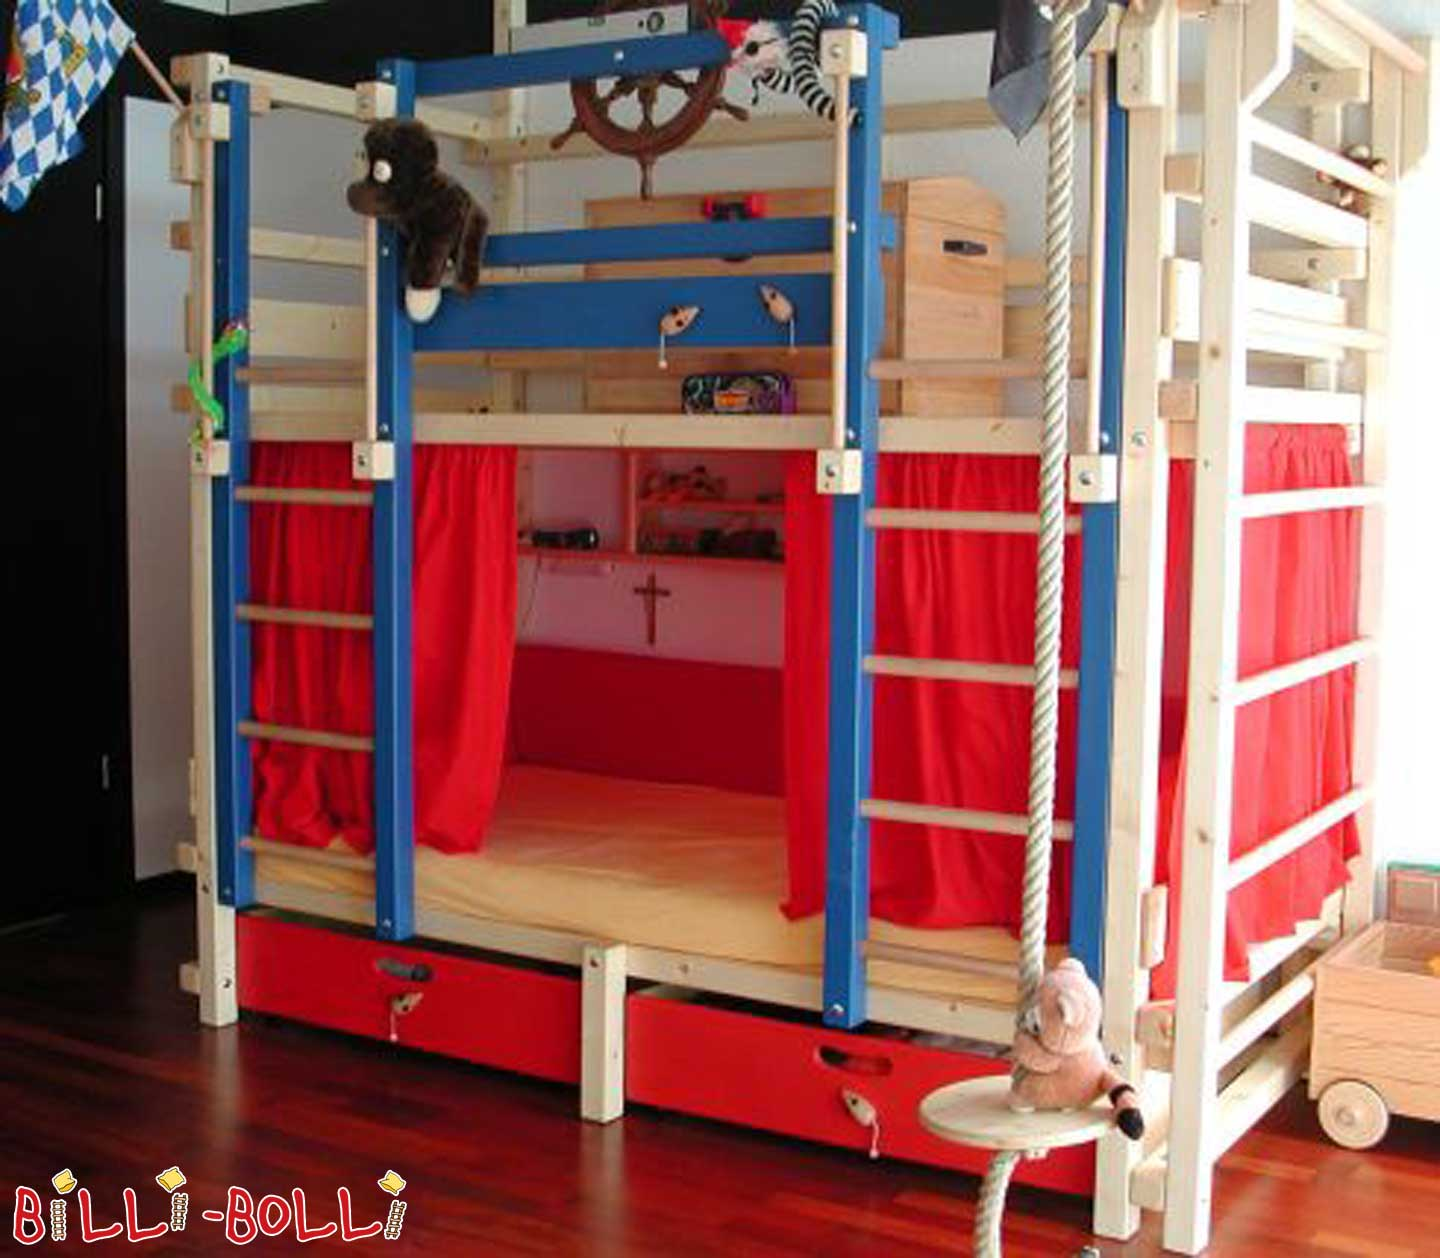 Bunk bed custom built in 2001 original Billi-Boll (second hand bunk bed)